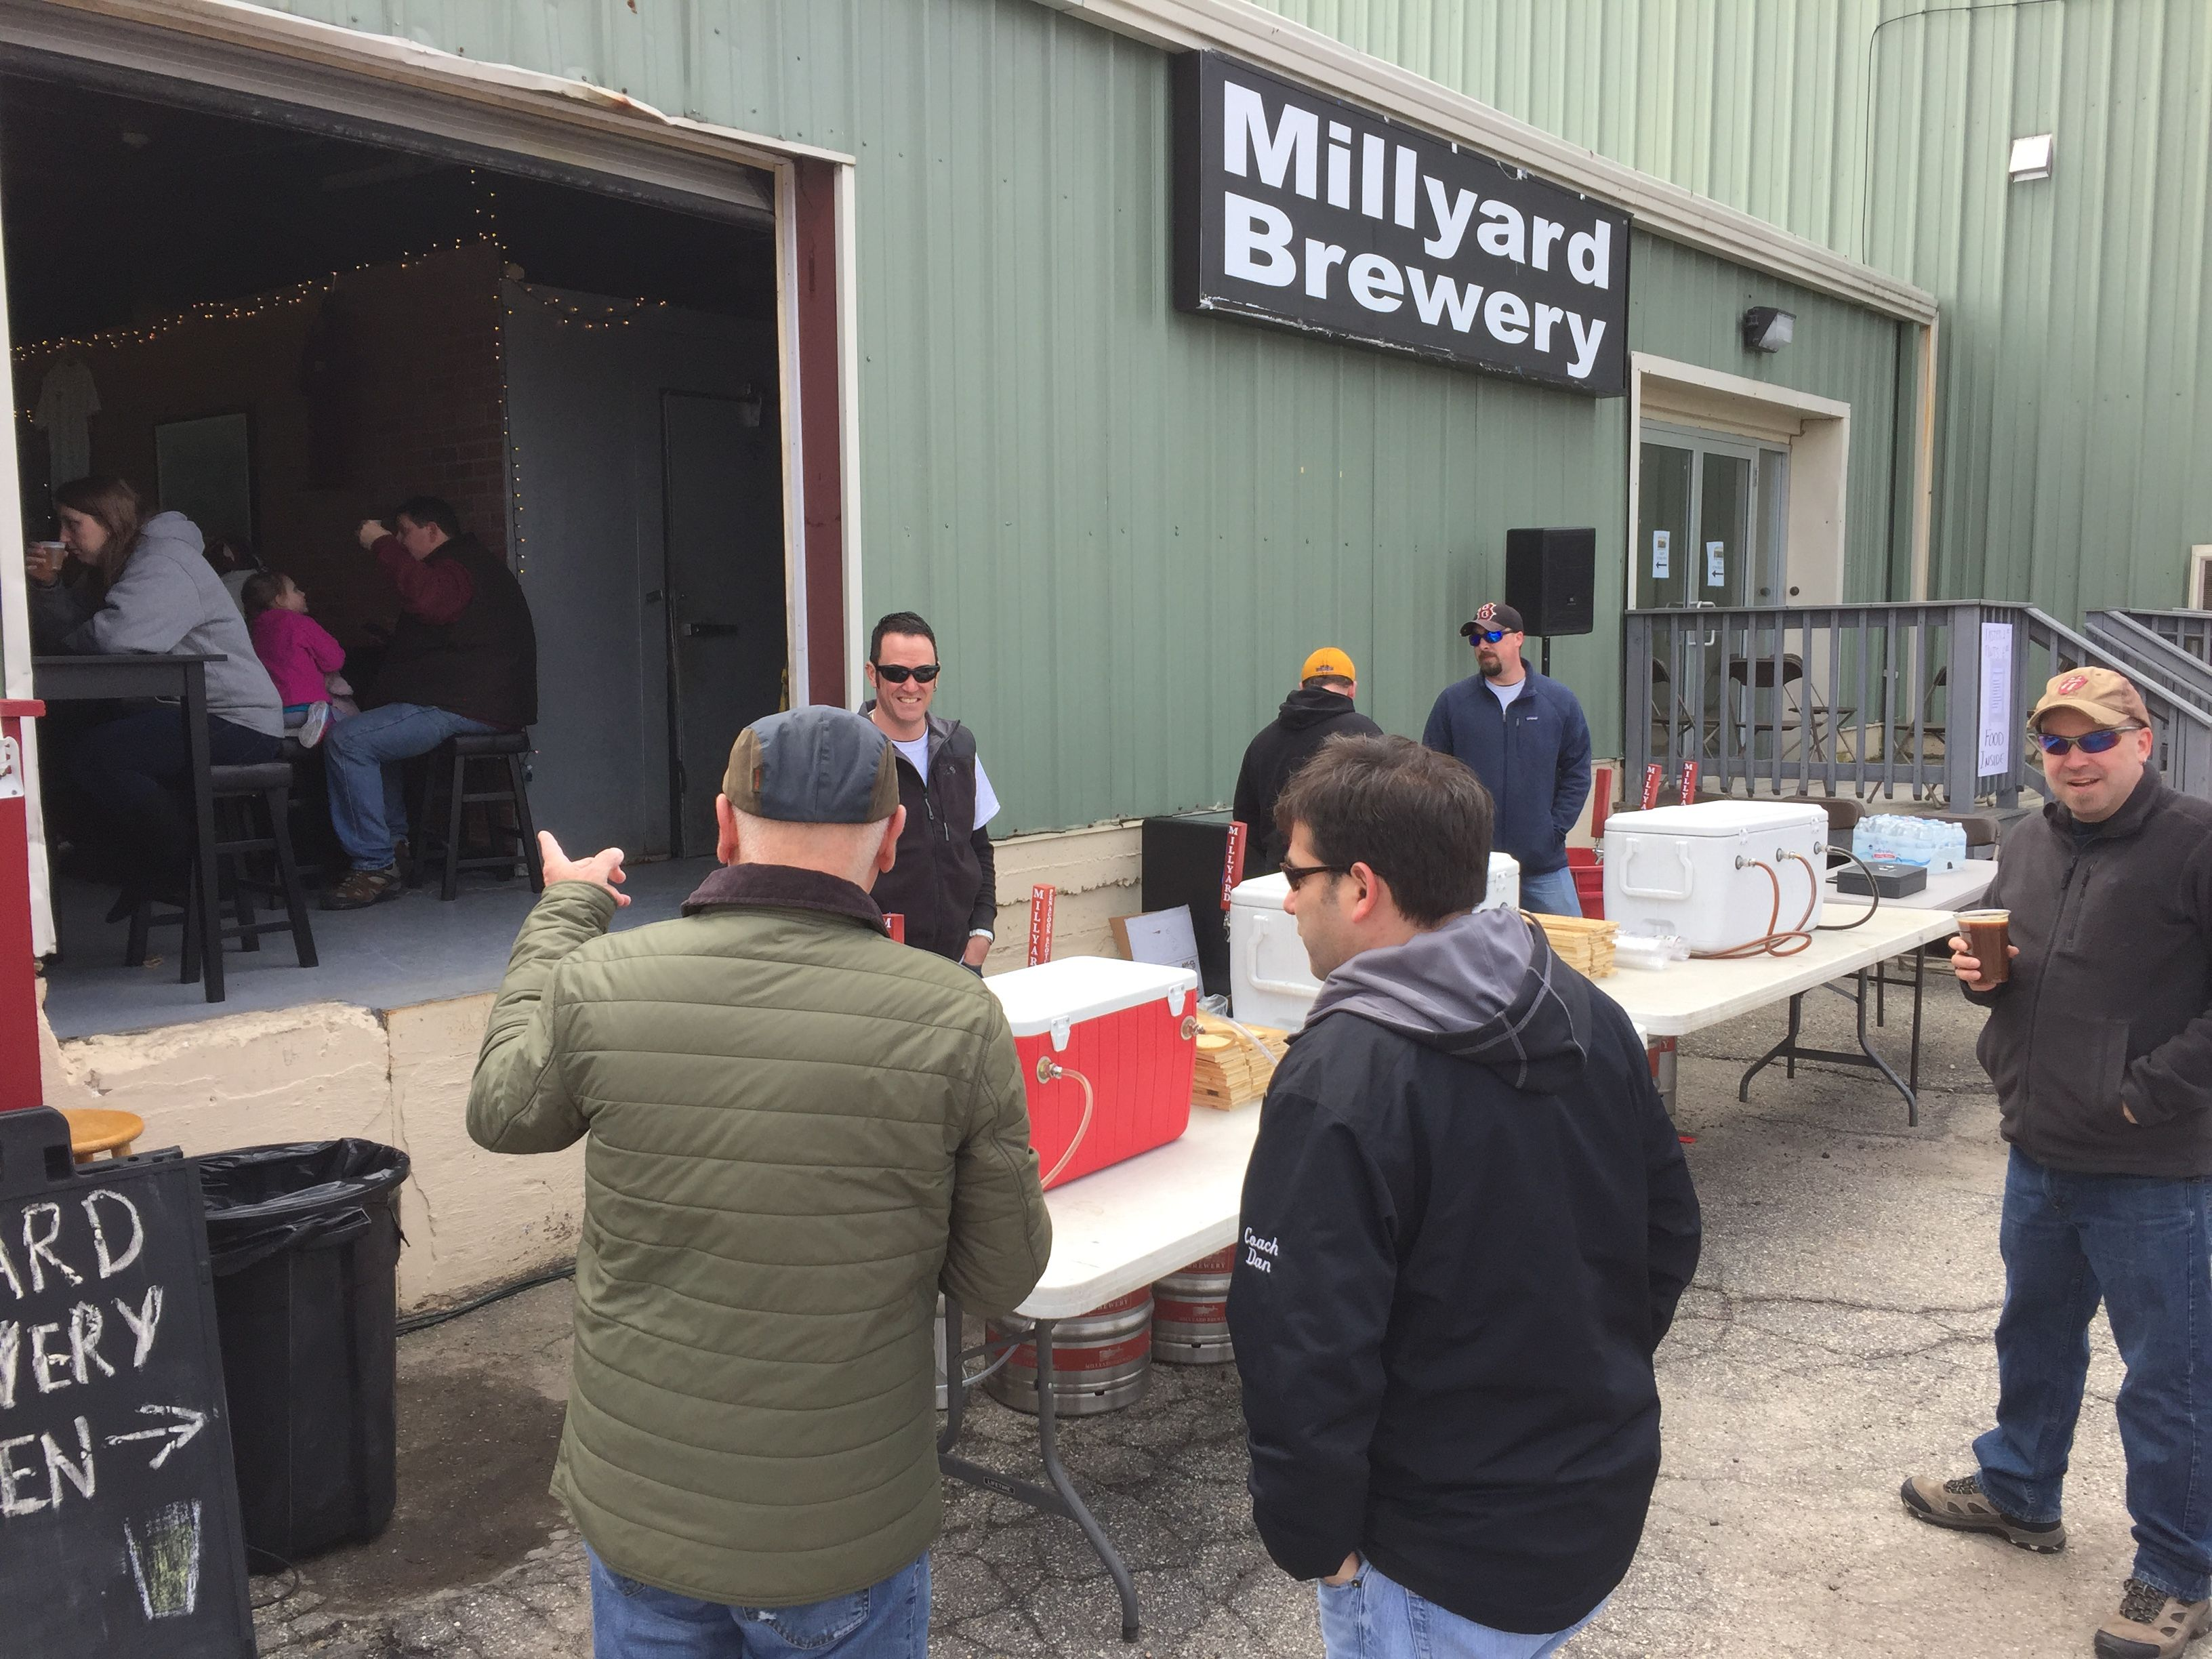 Pin by Millyard Brewery on MIllyard Brewery (With images